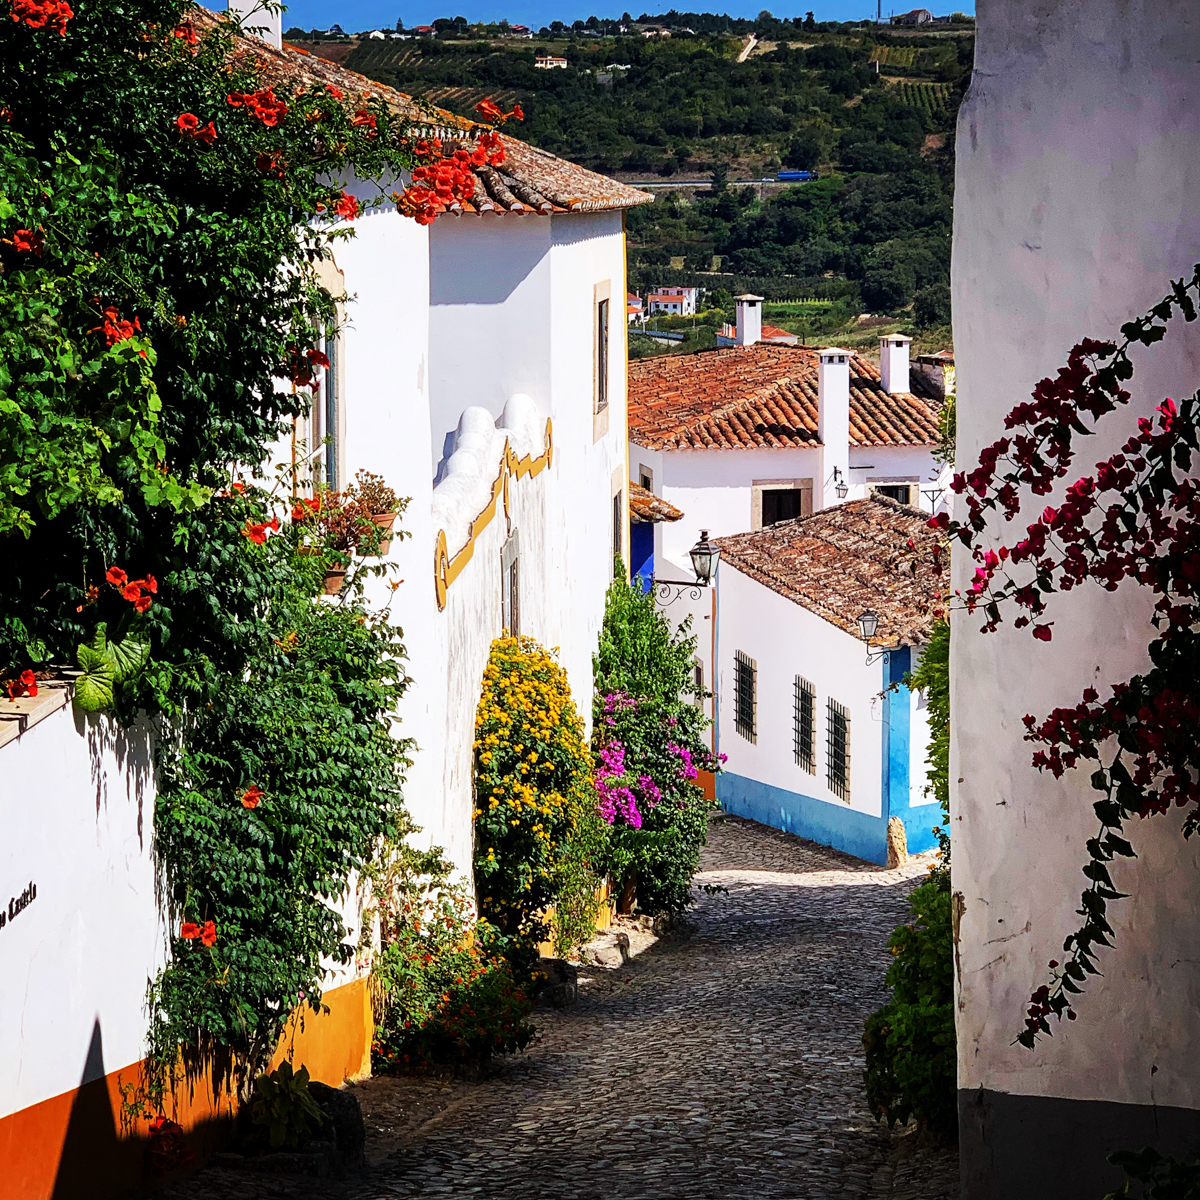 Colorful alley and plentiful flowers in Obidos